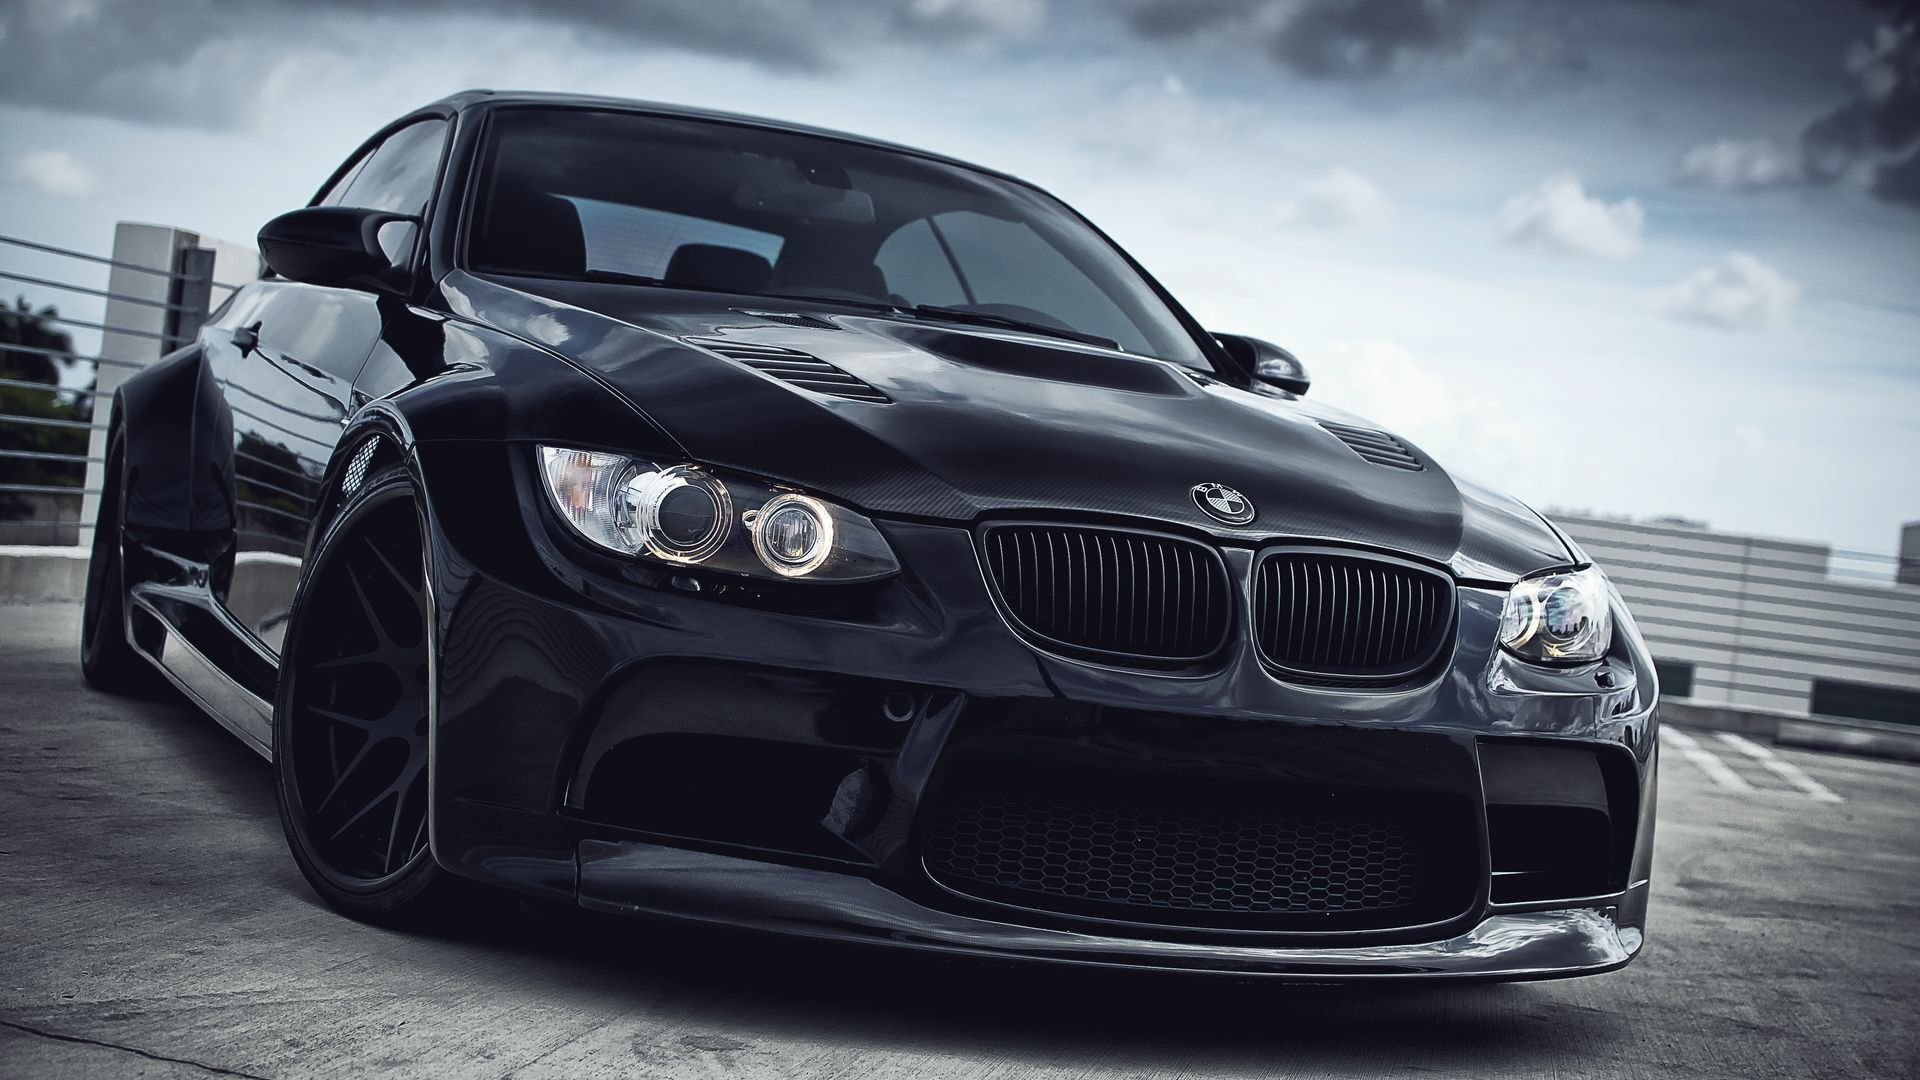 Latest Luxury Bmw Cars Wallpaper Bmw Wallpaper Hd Download Cars Free Download